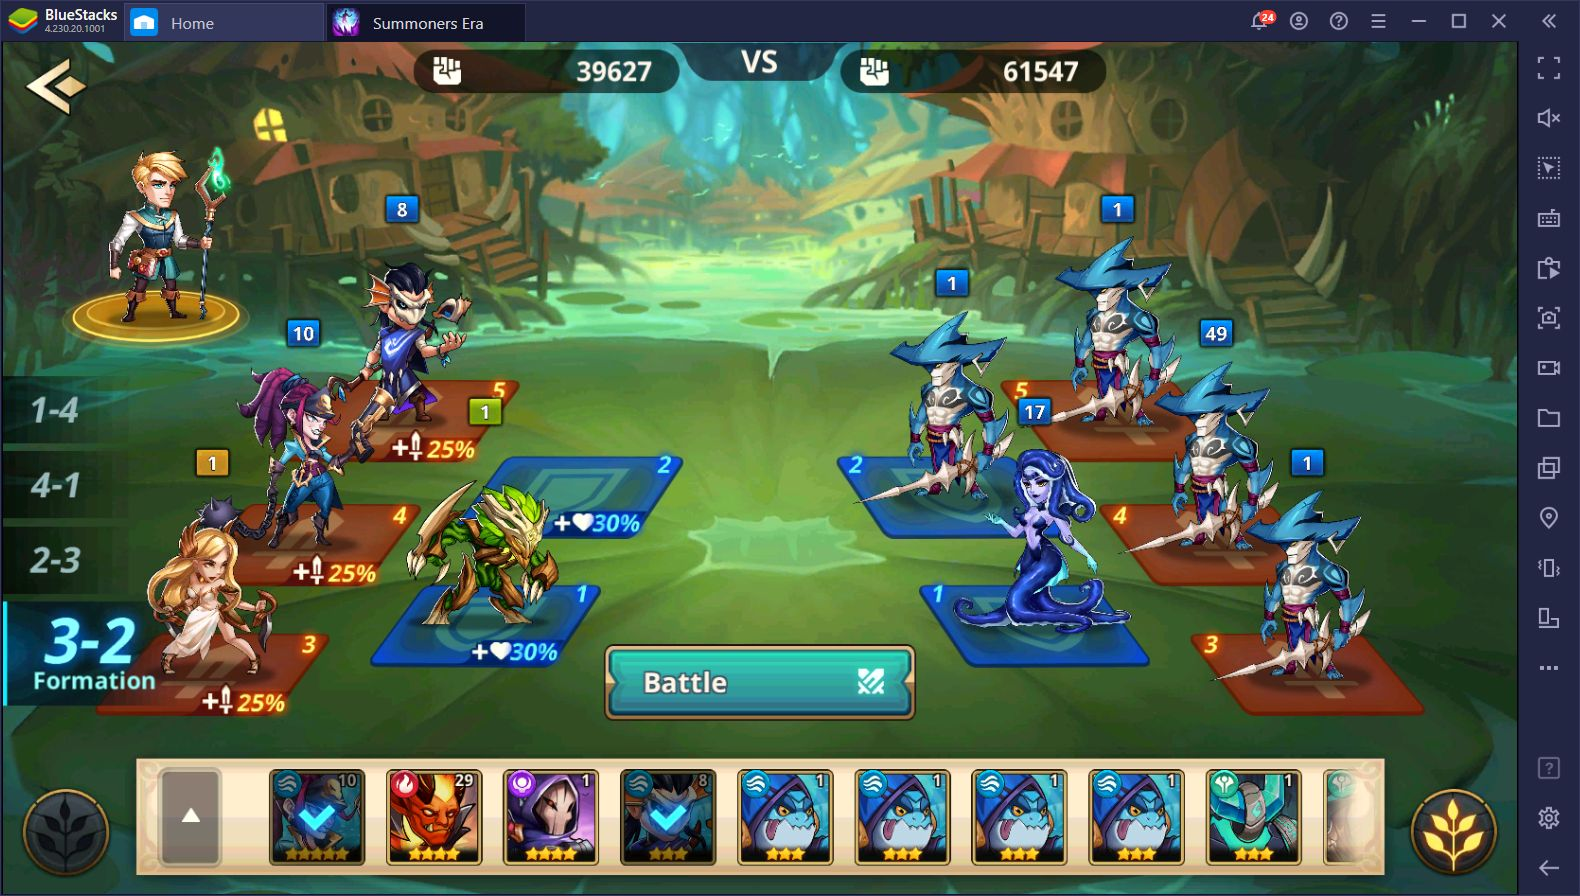 Summoners Era – The Best Tips, Tricks, Cheats, and Strategies to Get Godlike at the Game